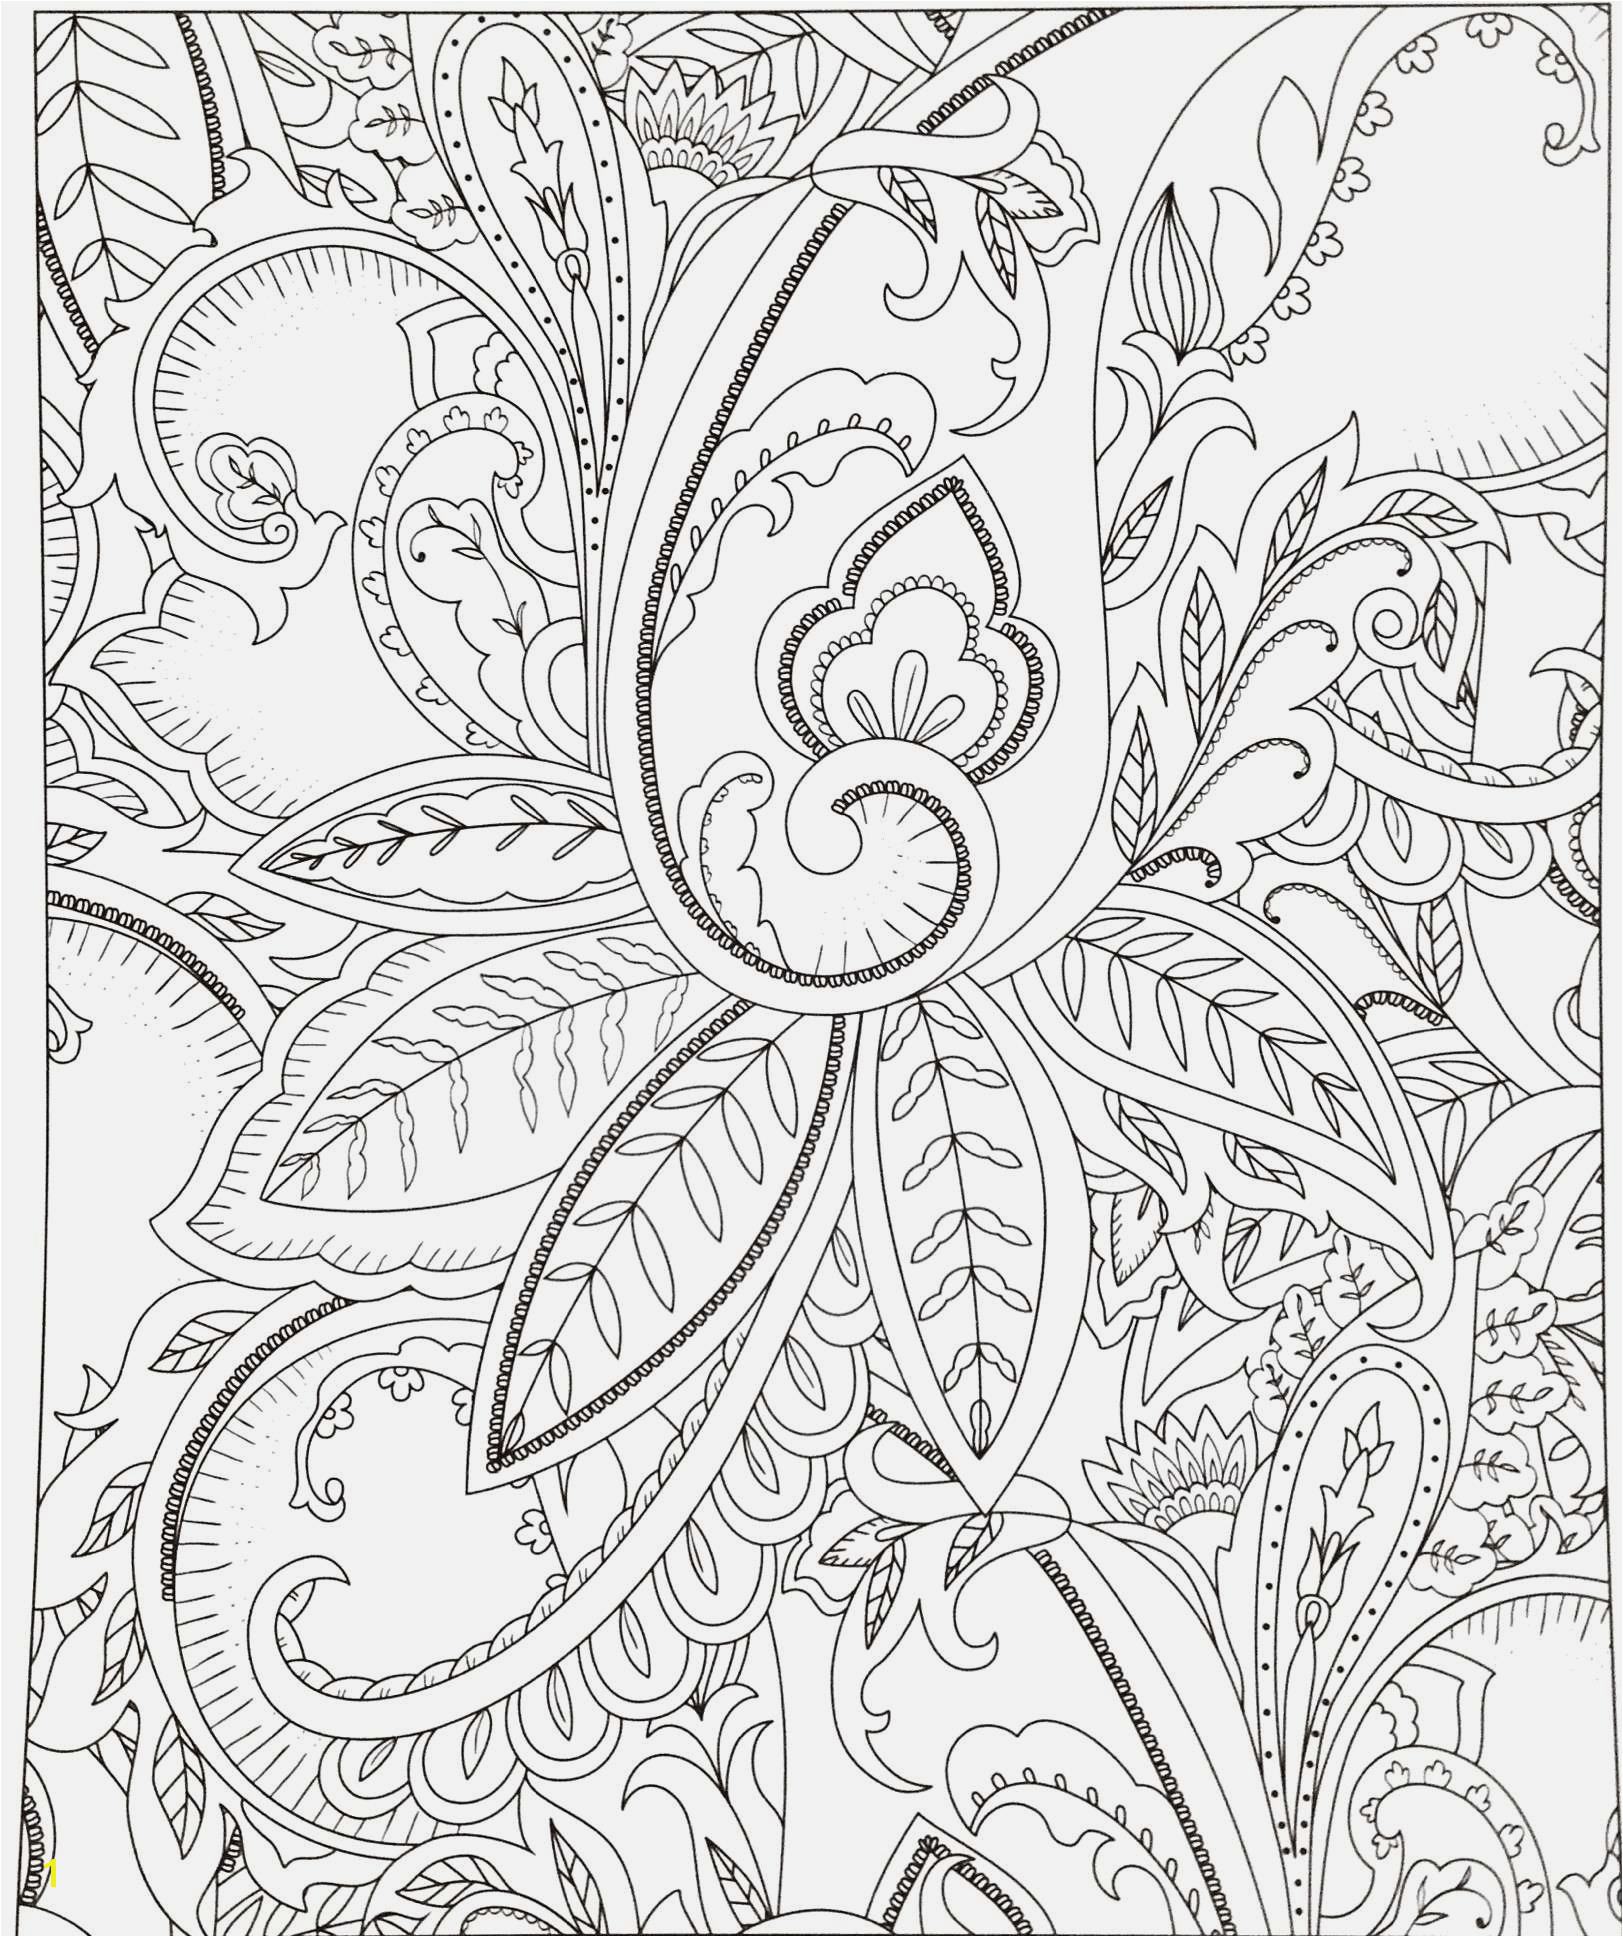 Disney Coloring Printable Coloring Pages 22 Disney Princess Coloring Printable Disney Coloring Download and Print